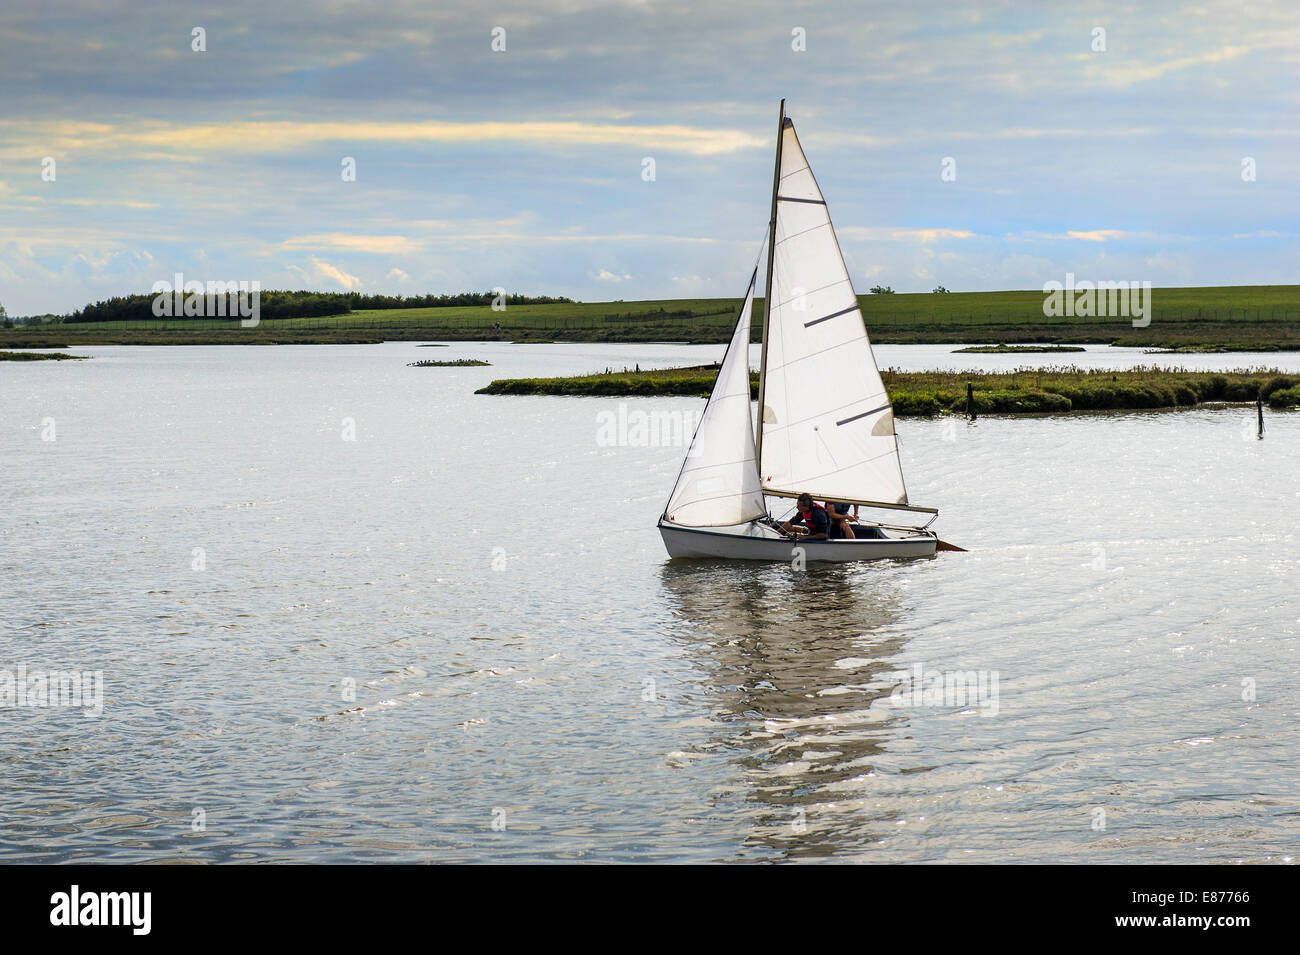 A small sailboat dinghy on the Blackwater River in Essex. - Stock Image